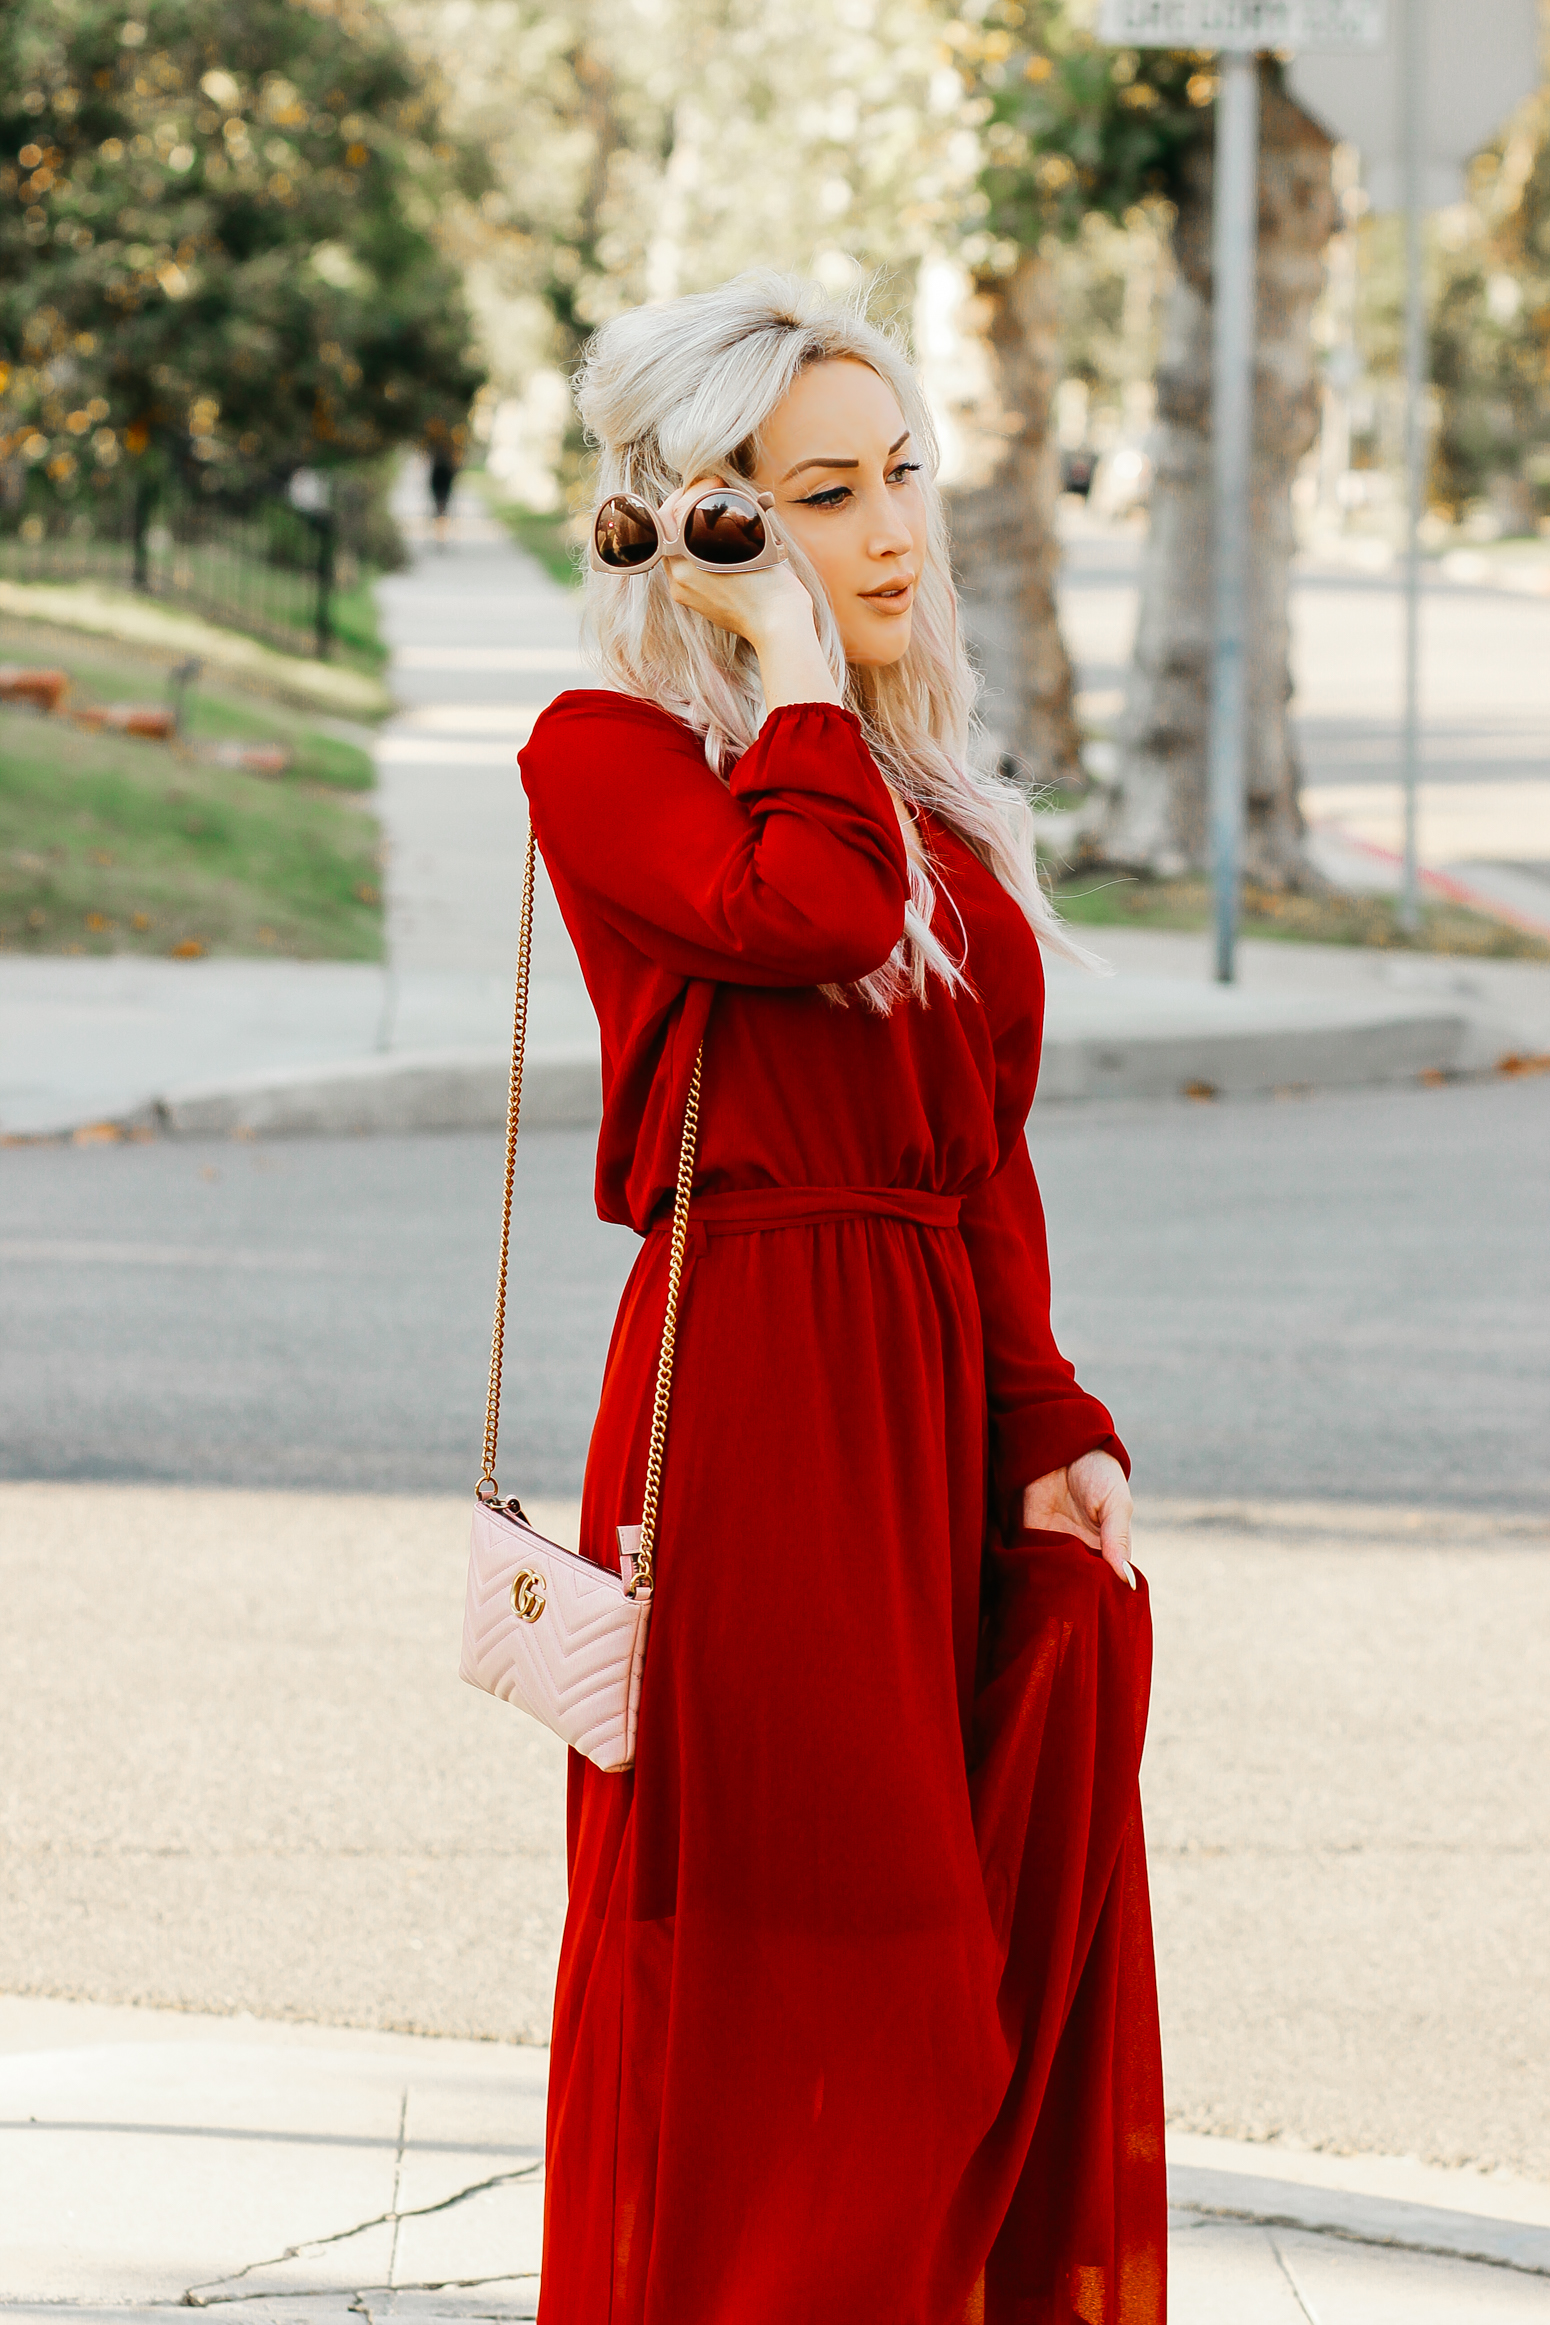 Blondie in the City | Sheer Red Maxi Dress w/ pink Gucci Bag